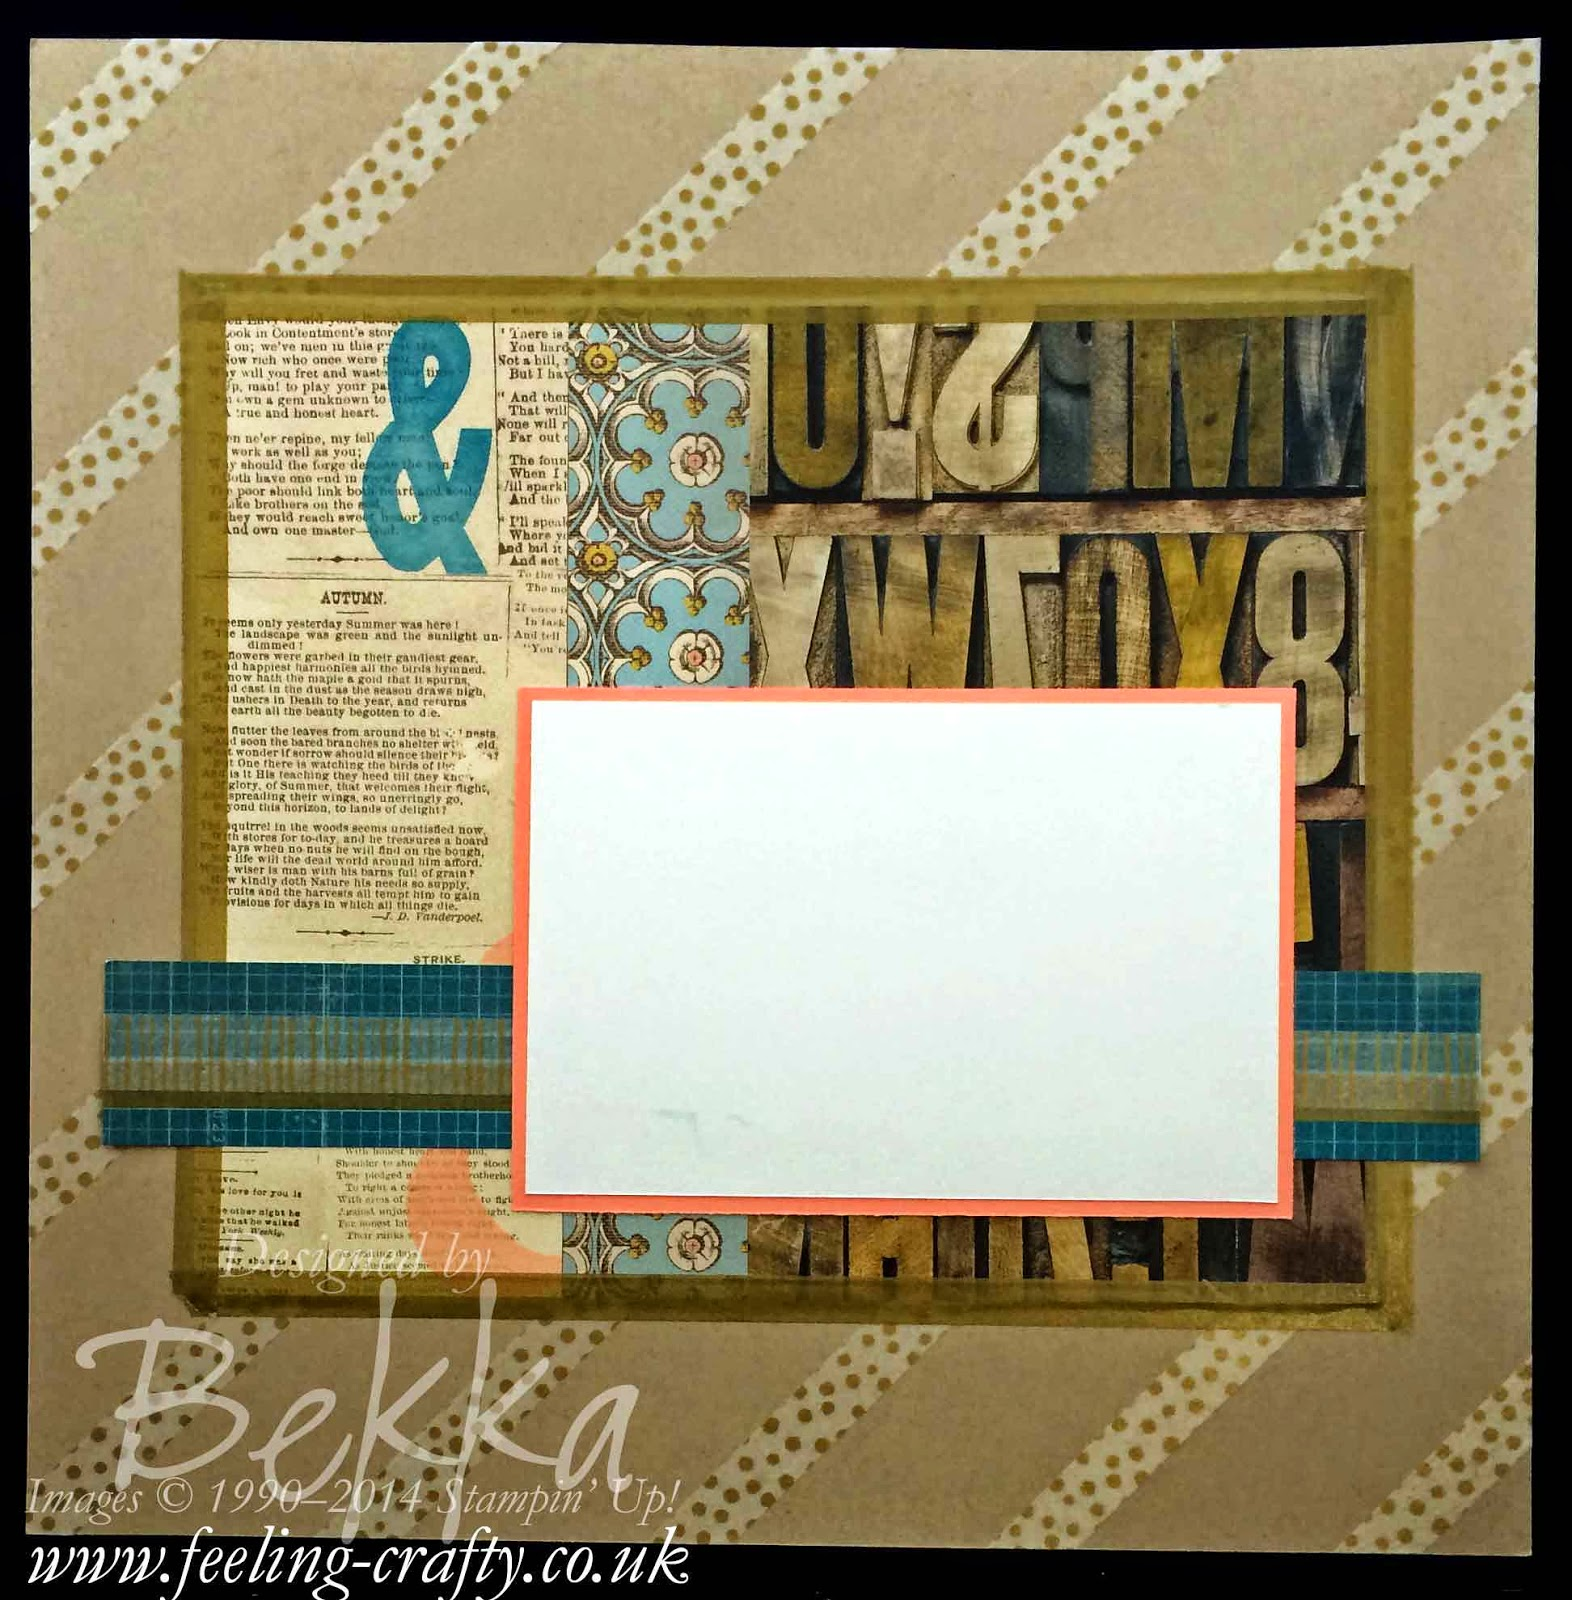 Washi Tape Fun Scrapbook Page by Stampin' Up! UK Independent Demonstrator Bekka - check out her blog each Saturday for Scrapbooking Ideas